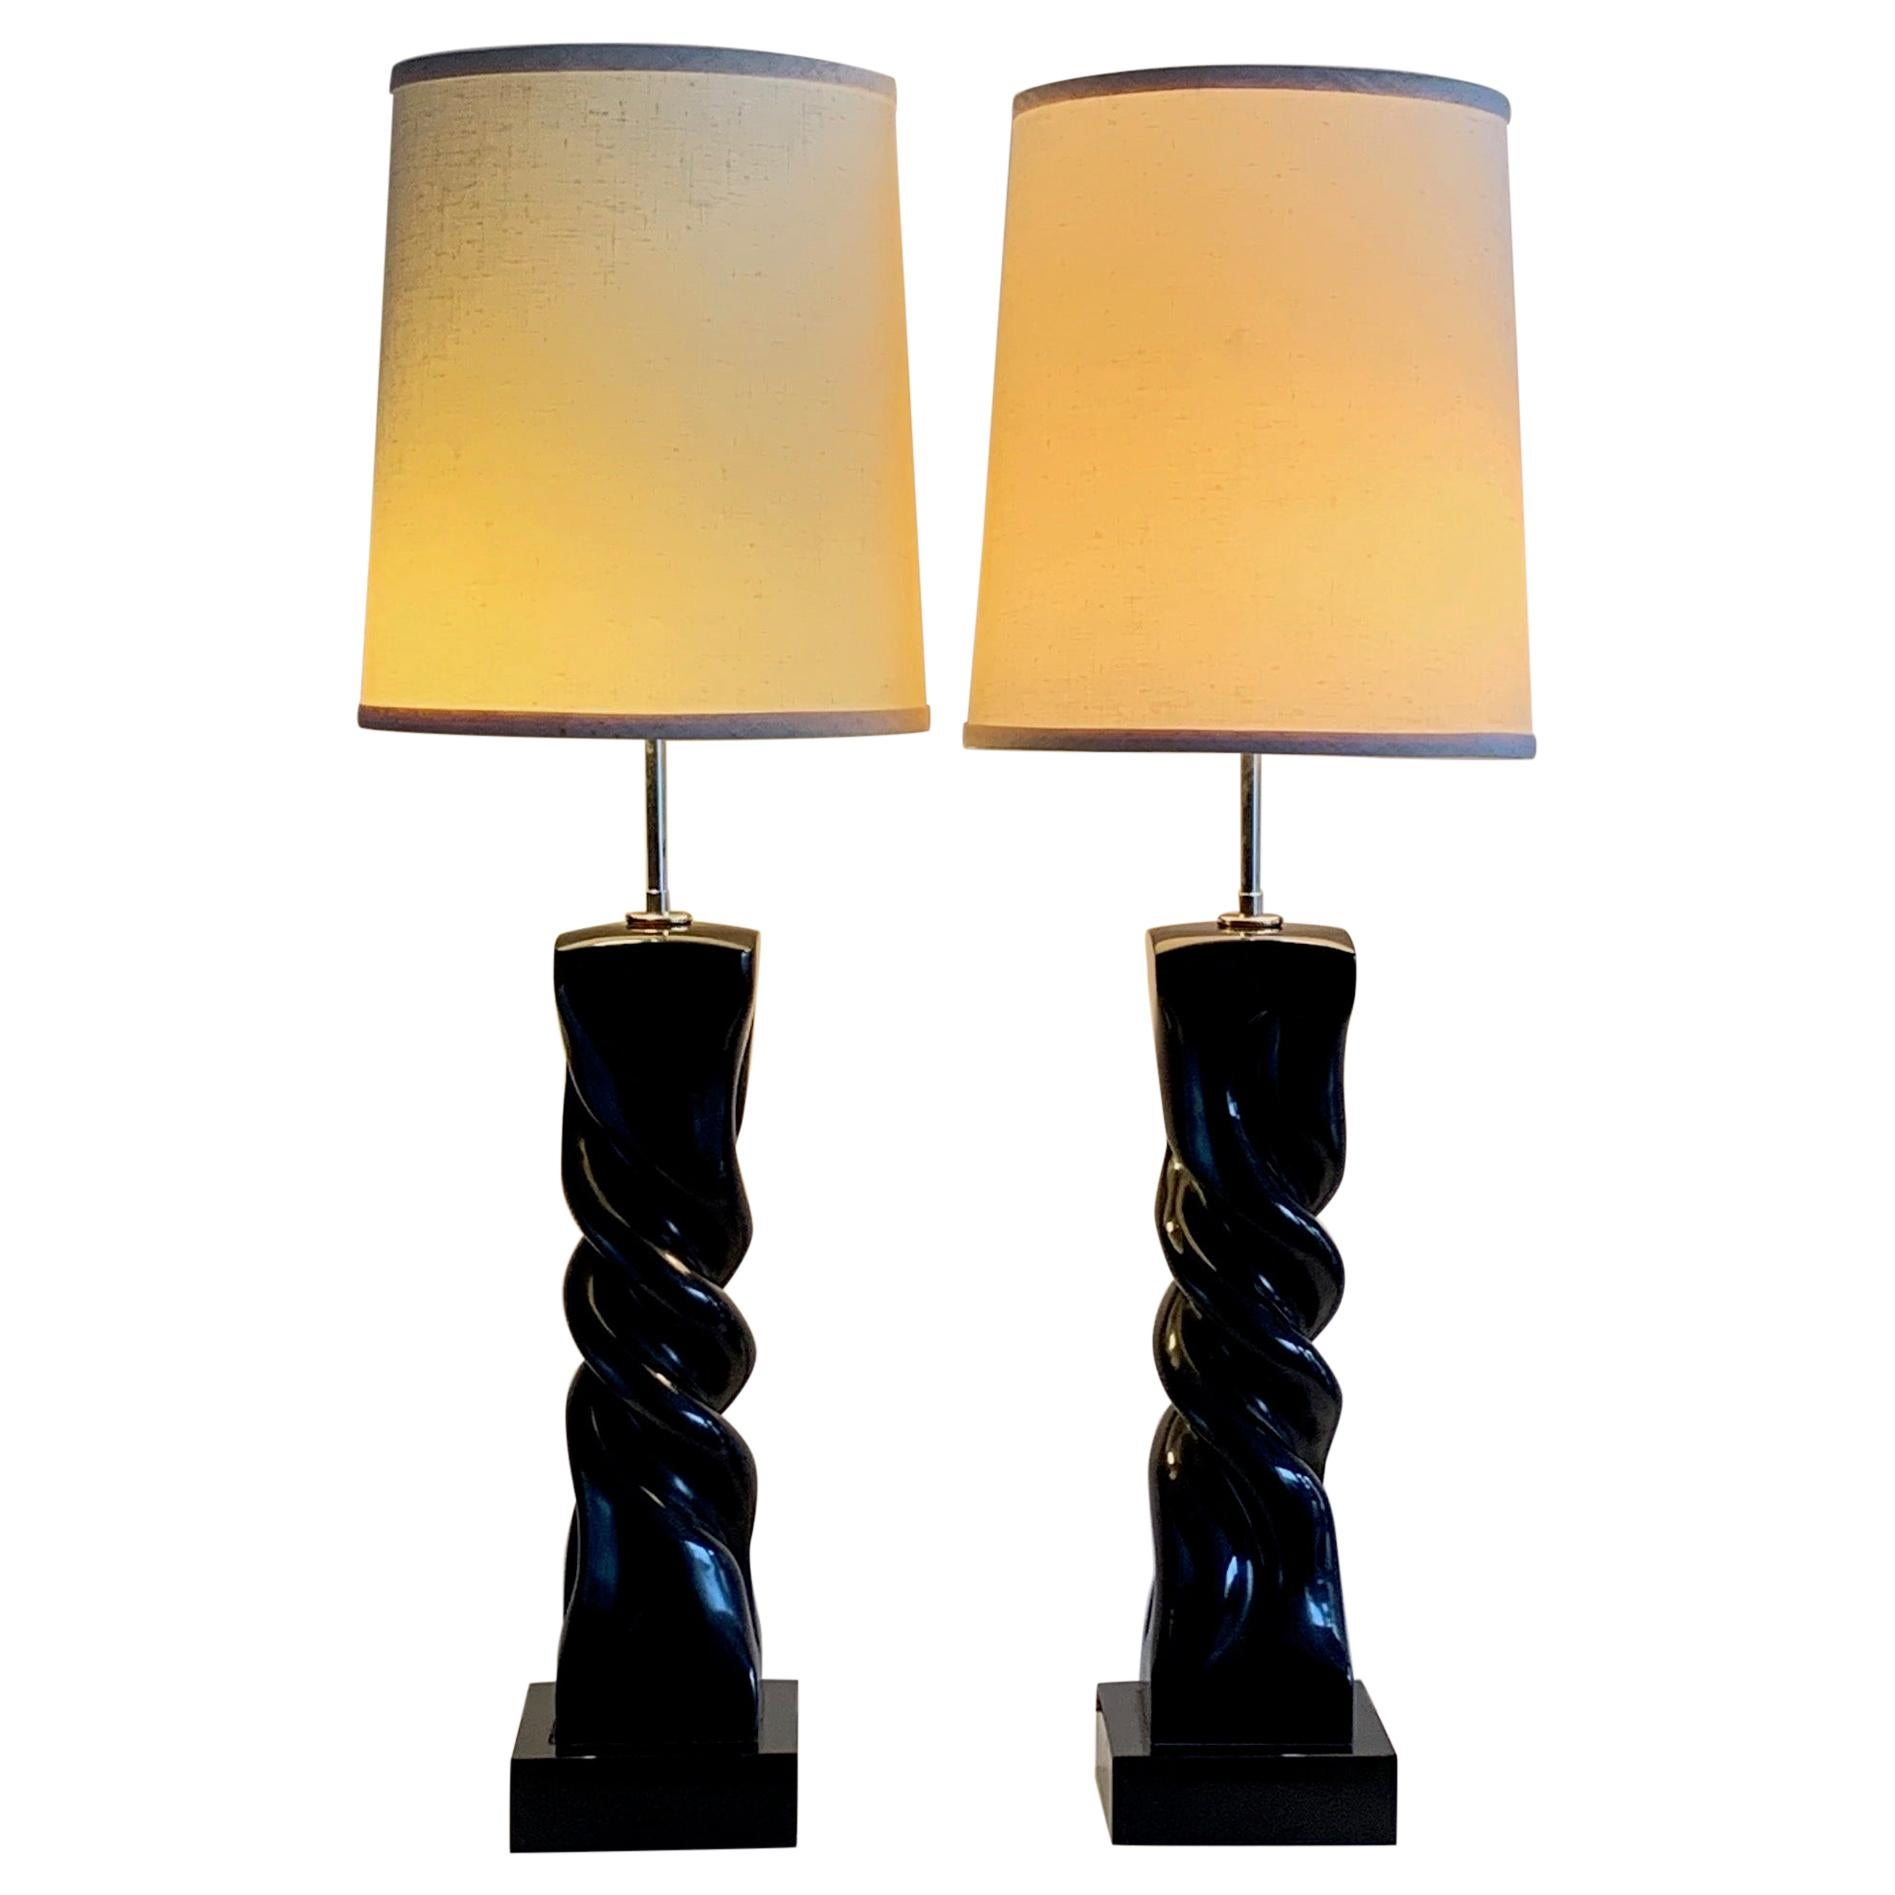 Pair of Table Lamps by Heifetz in Black Lacquer